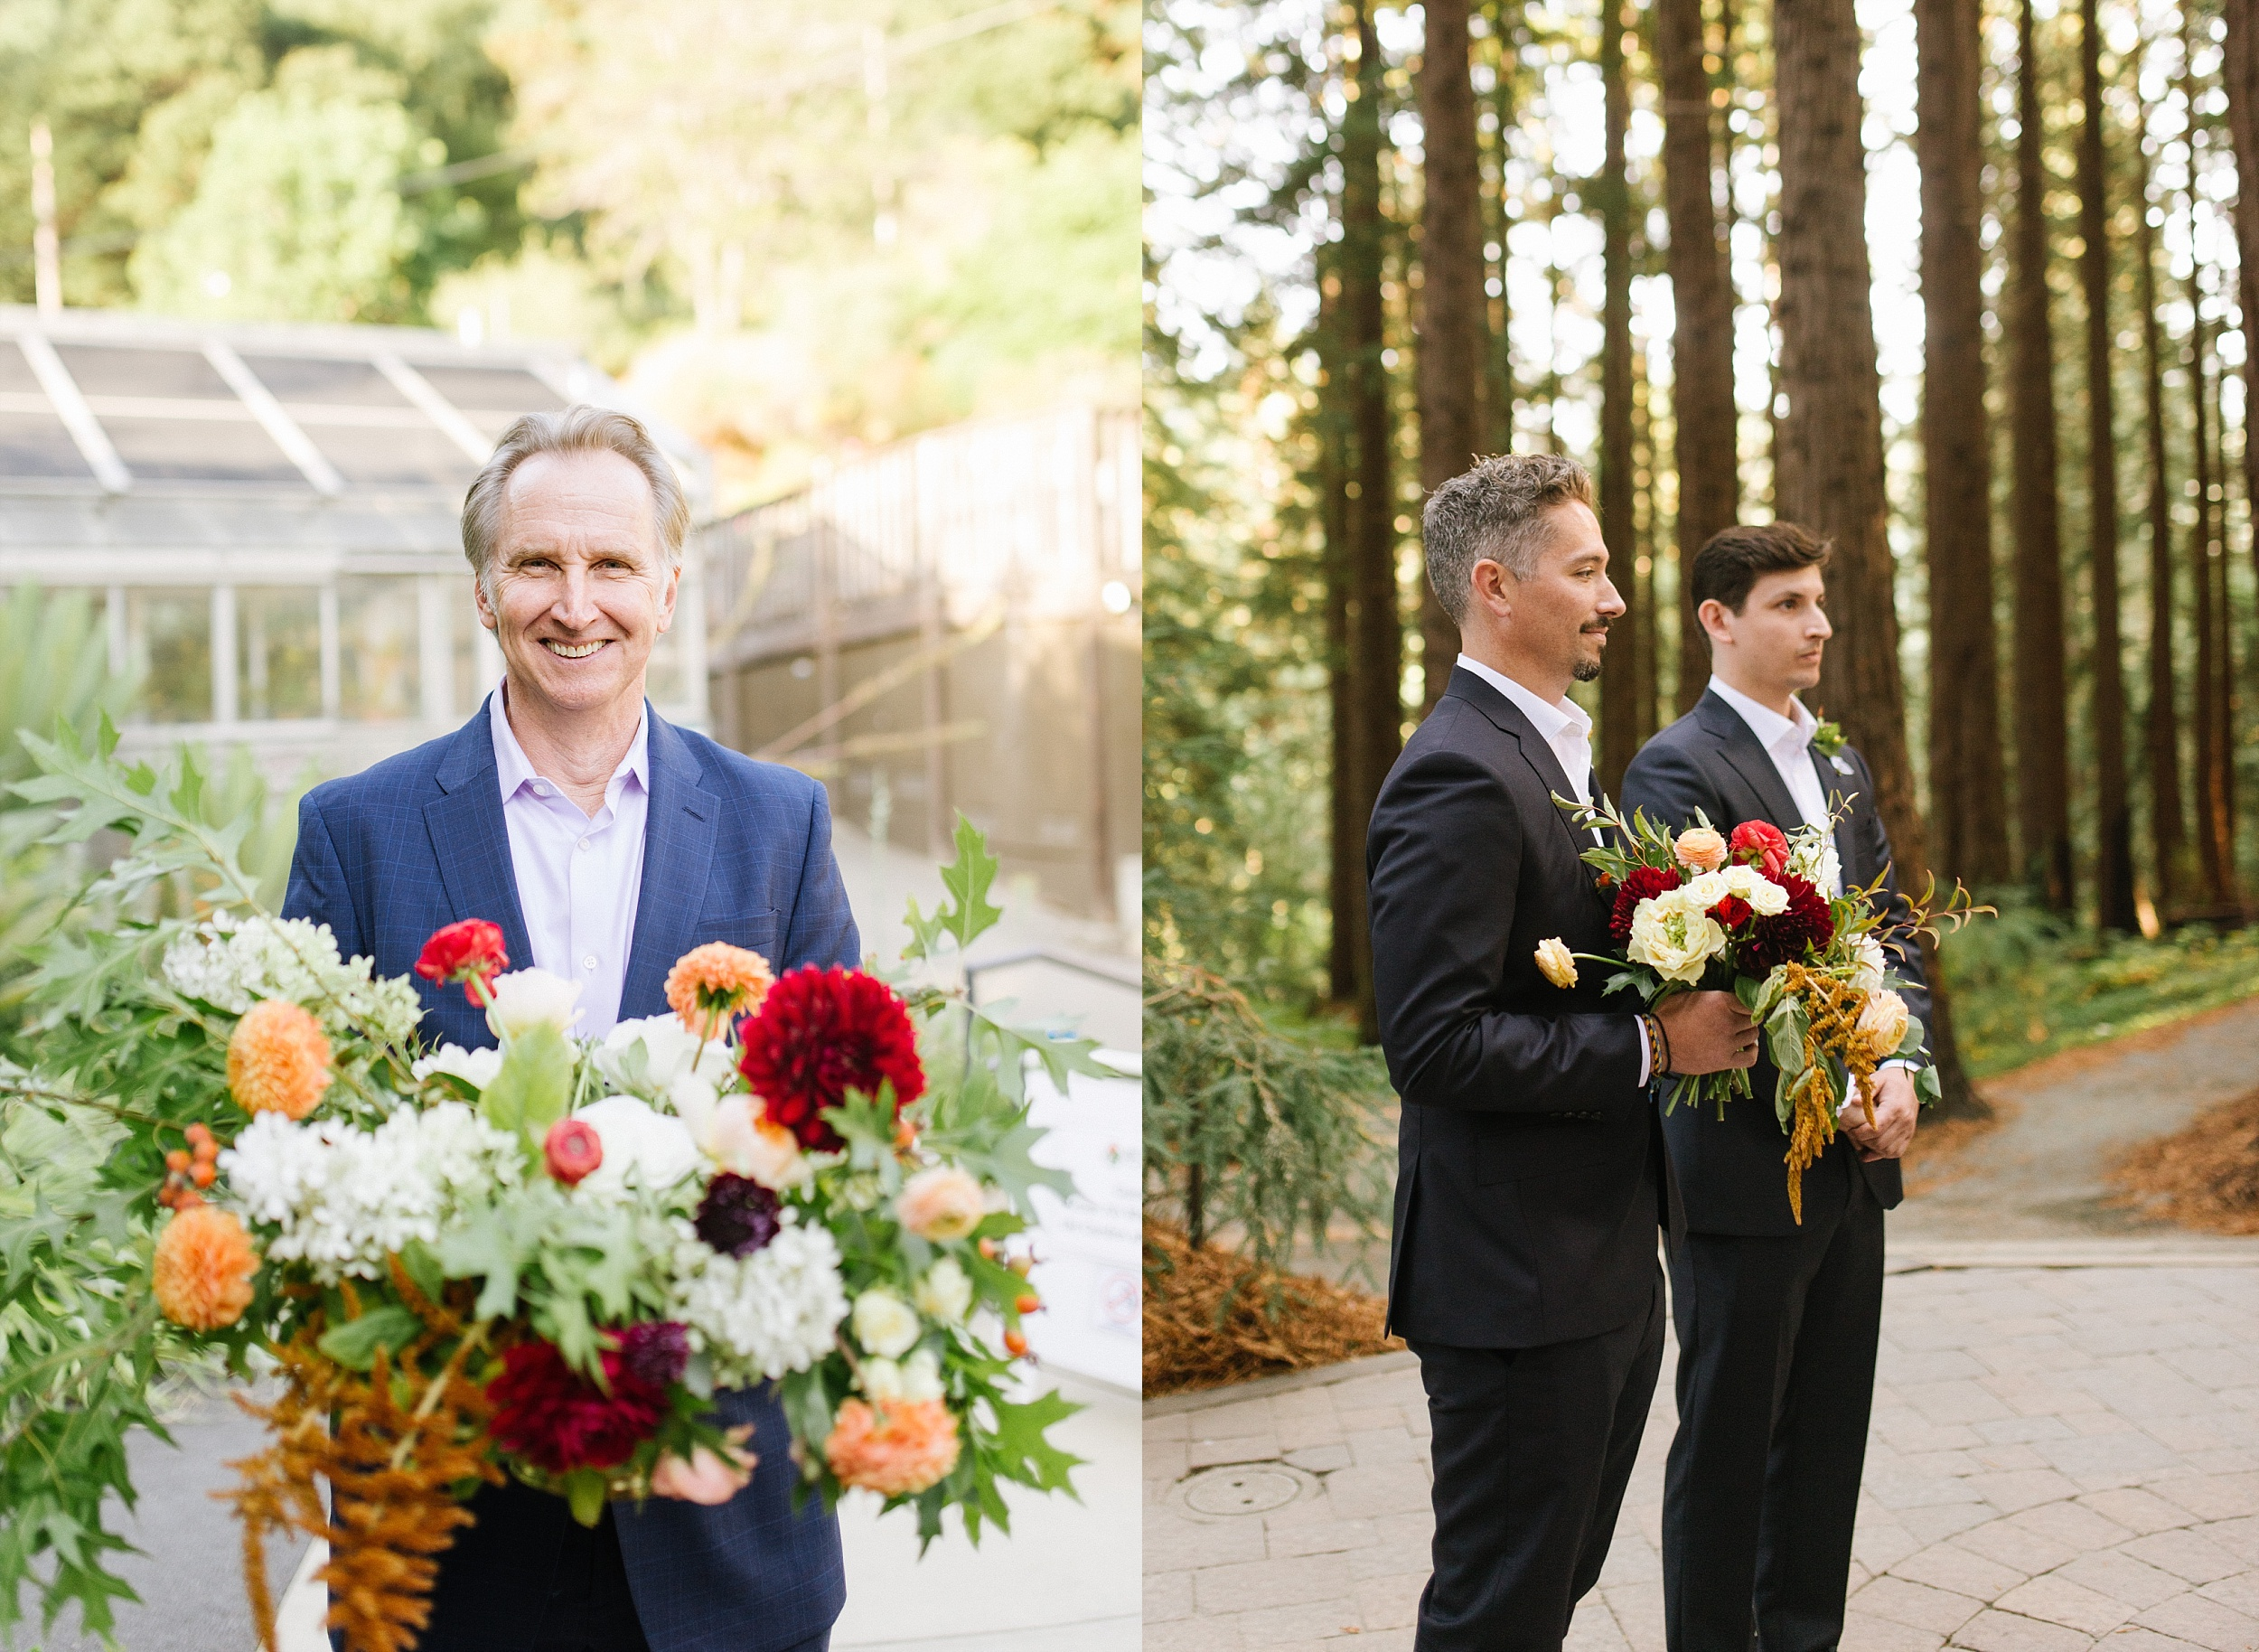 noahhannah_redwoods_botanical_wedding_berkeley_cdp_0044.jpg